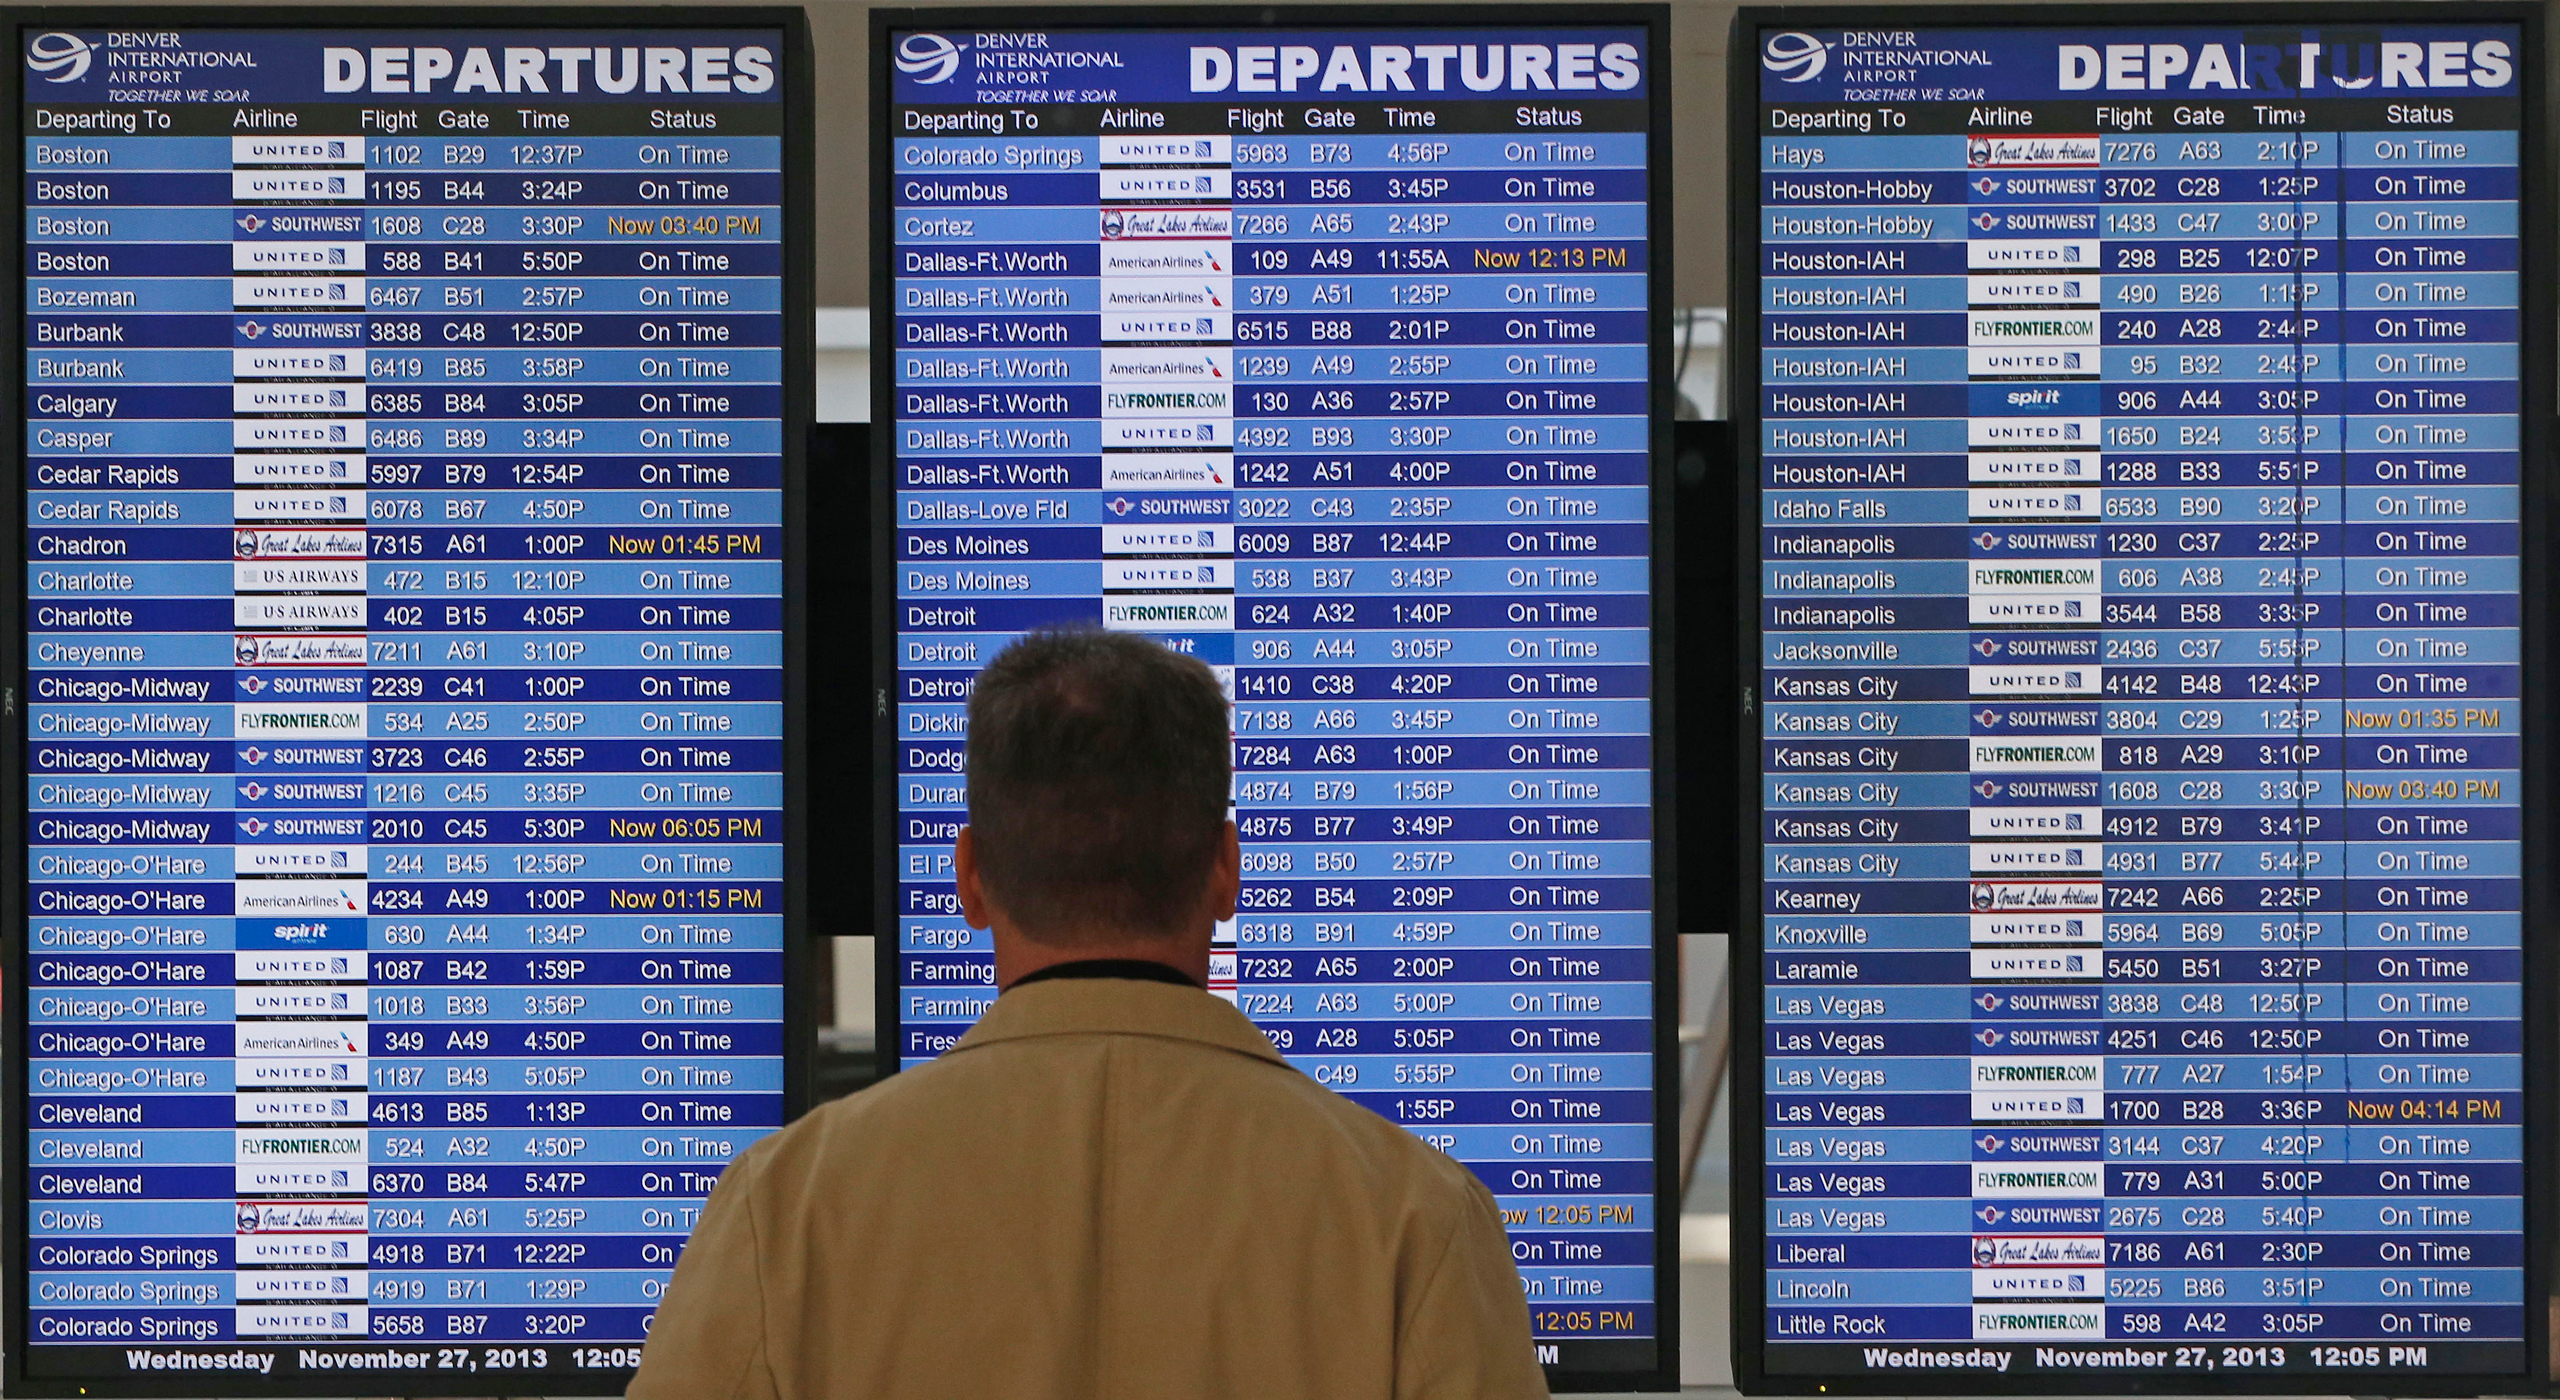 On the busiest travel day of the year, a passenger checks the departures board in a terminal at Denver International Airport, Wednesday, Nov. 27, 2013. More than 43 million people are to travel over the long holiday weekend, according to AAA. (AP Photo/Brennan Linsley)